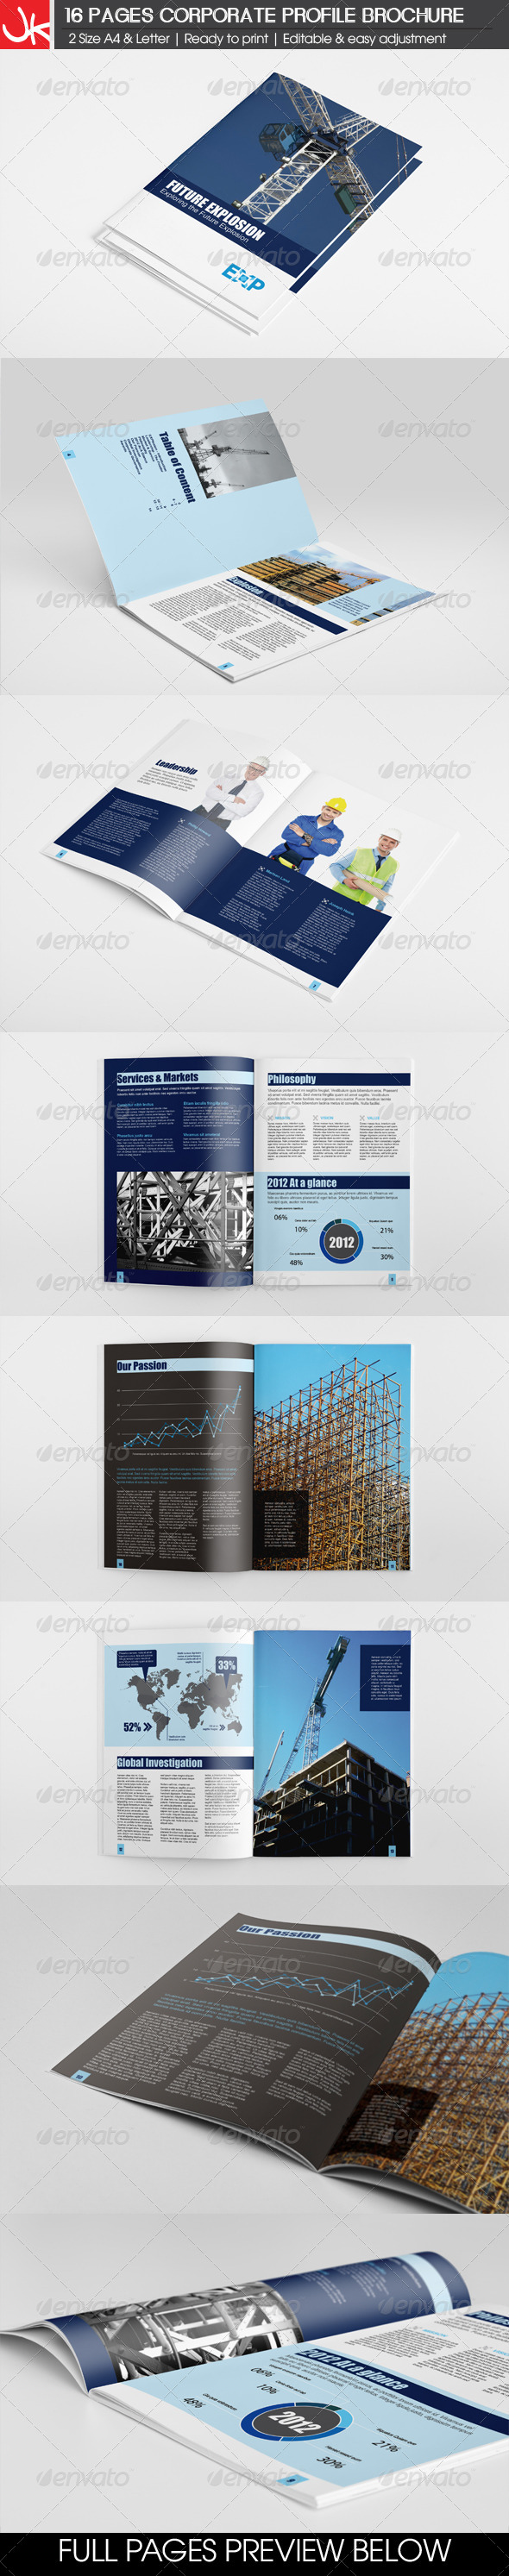 16 Pages Energy Construction Corporate Brochure - Corporate Brochures